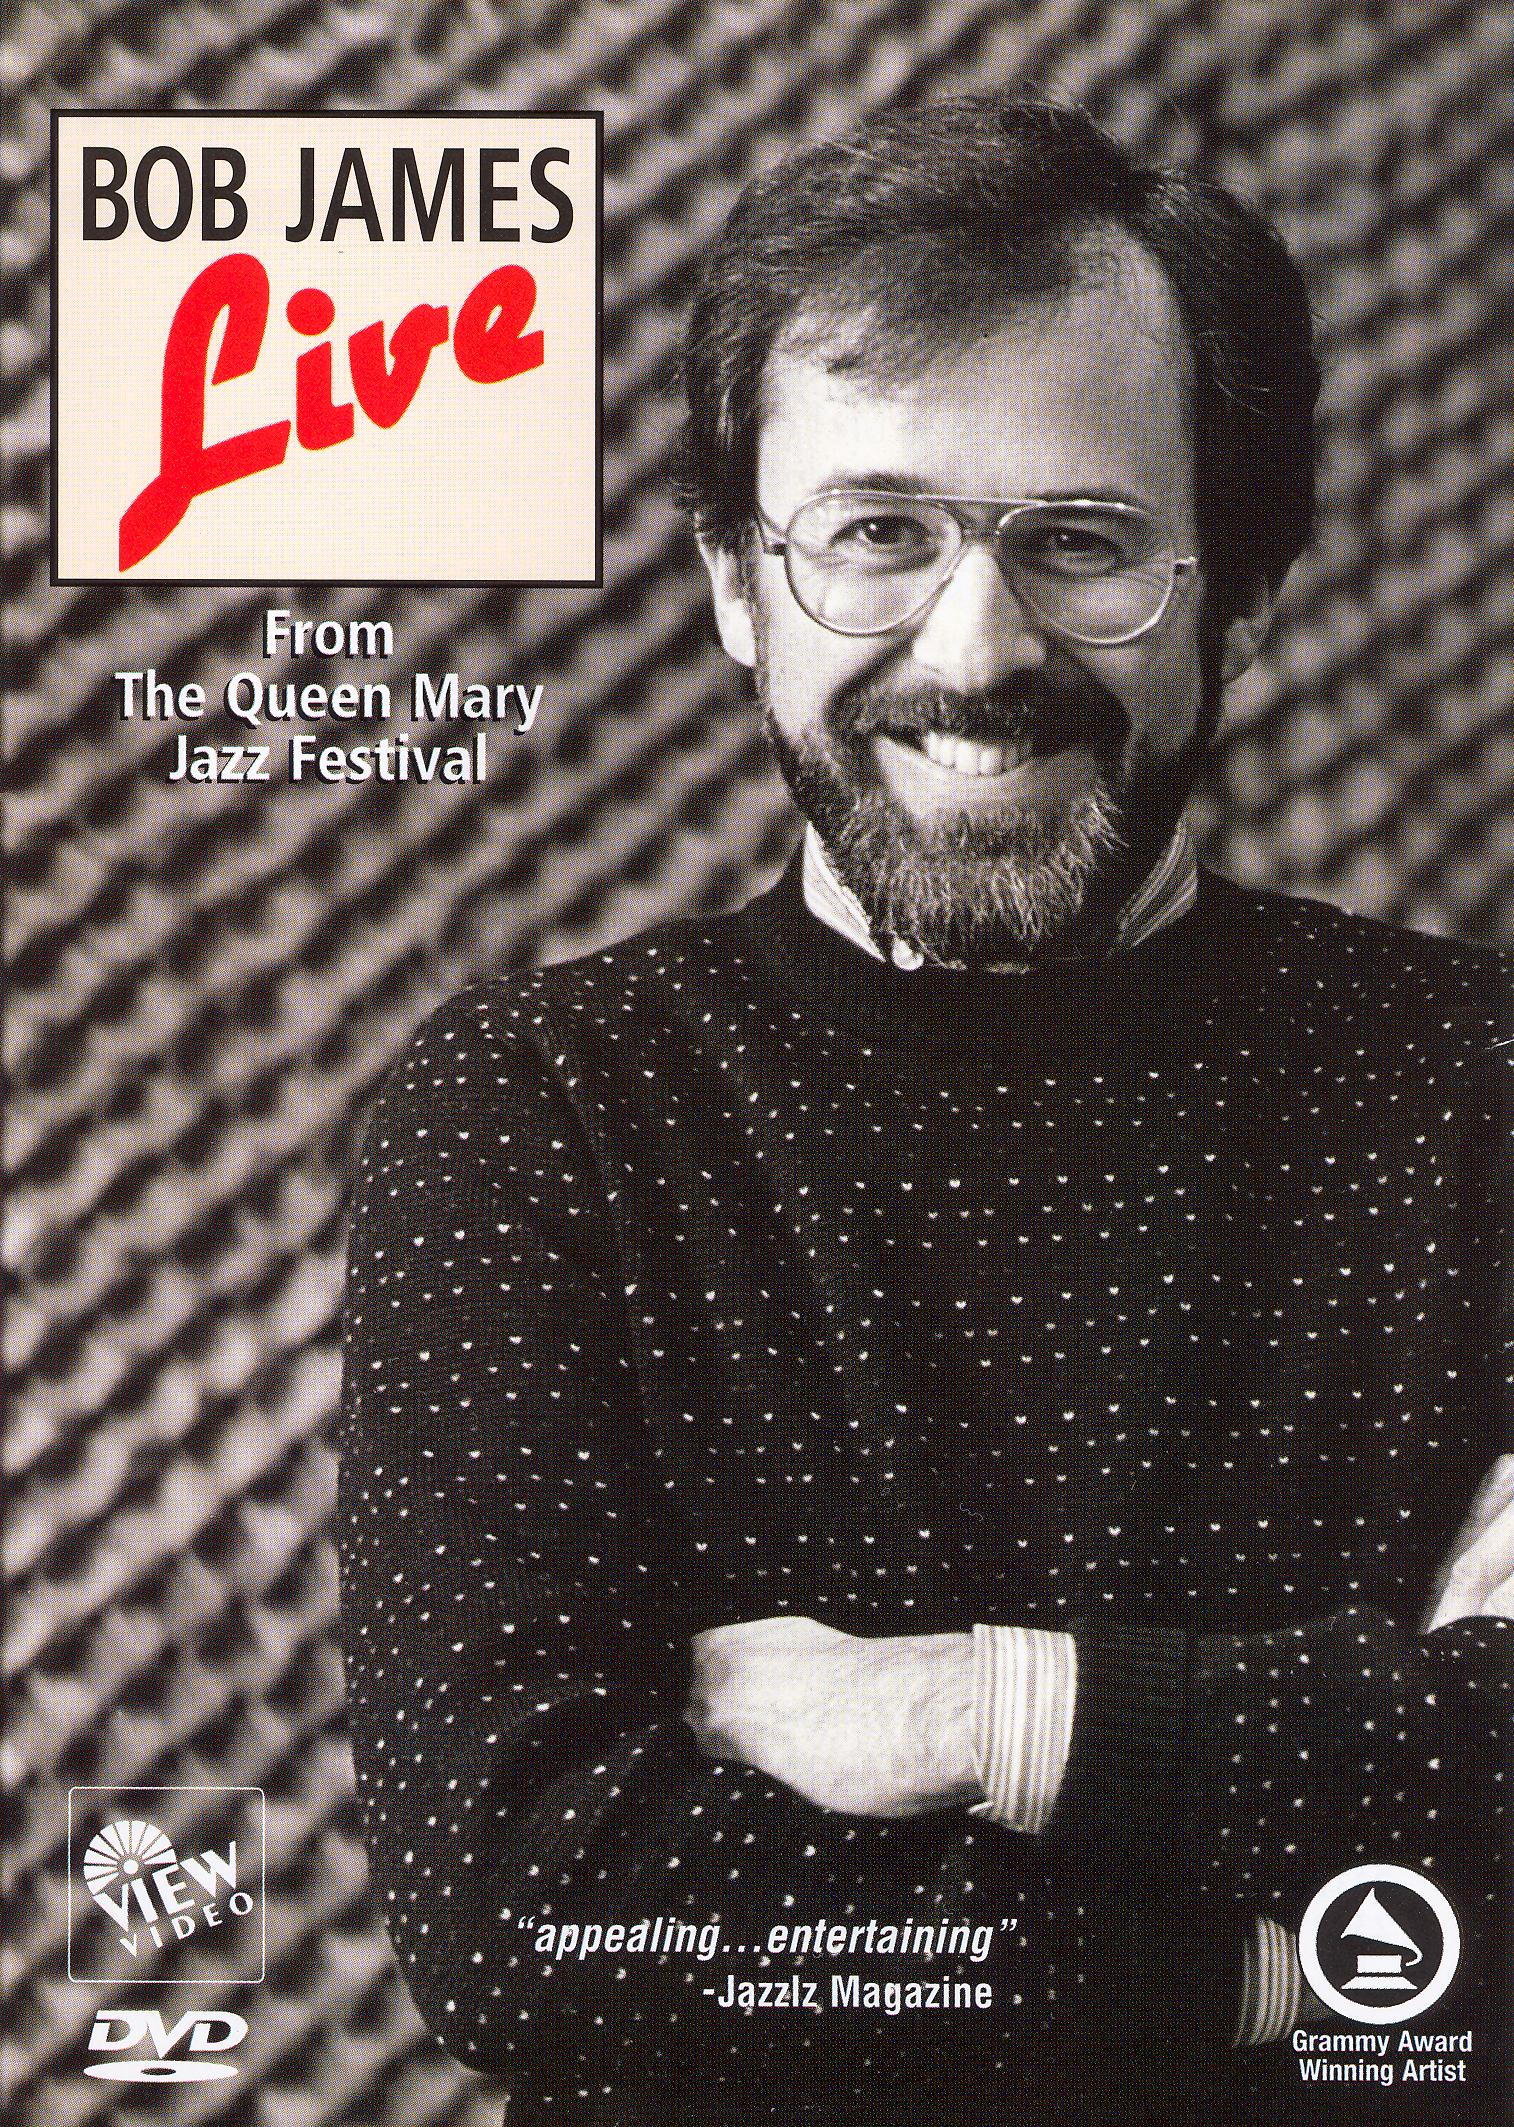 Bob James: Live - From the Queen Mary Jazz Festival